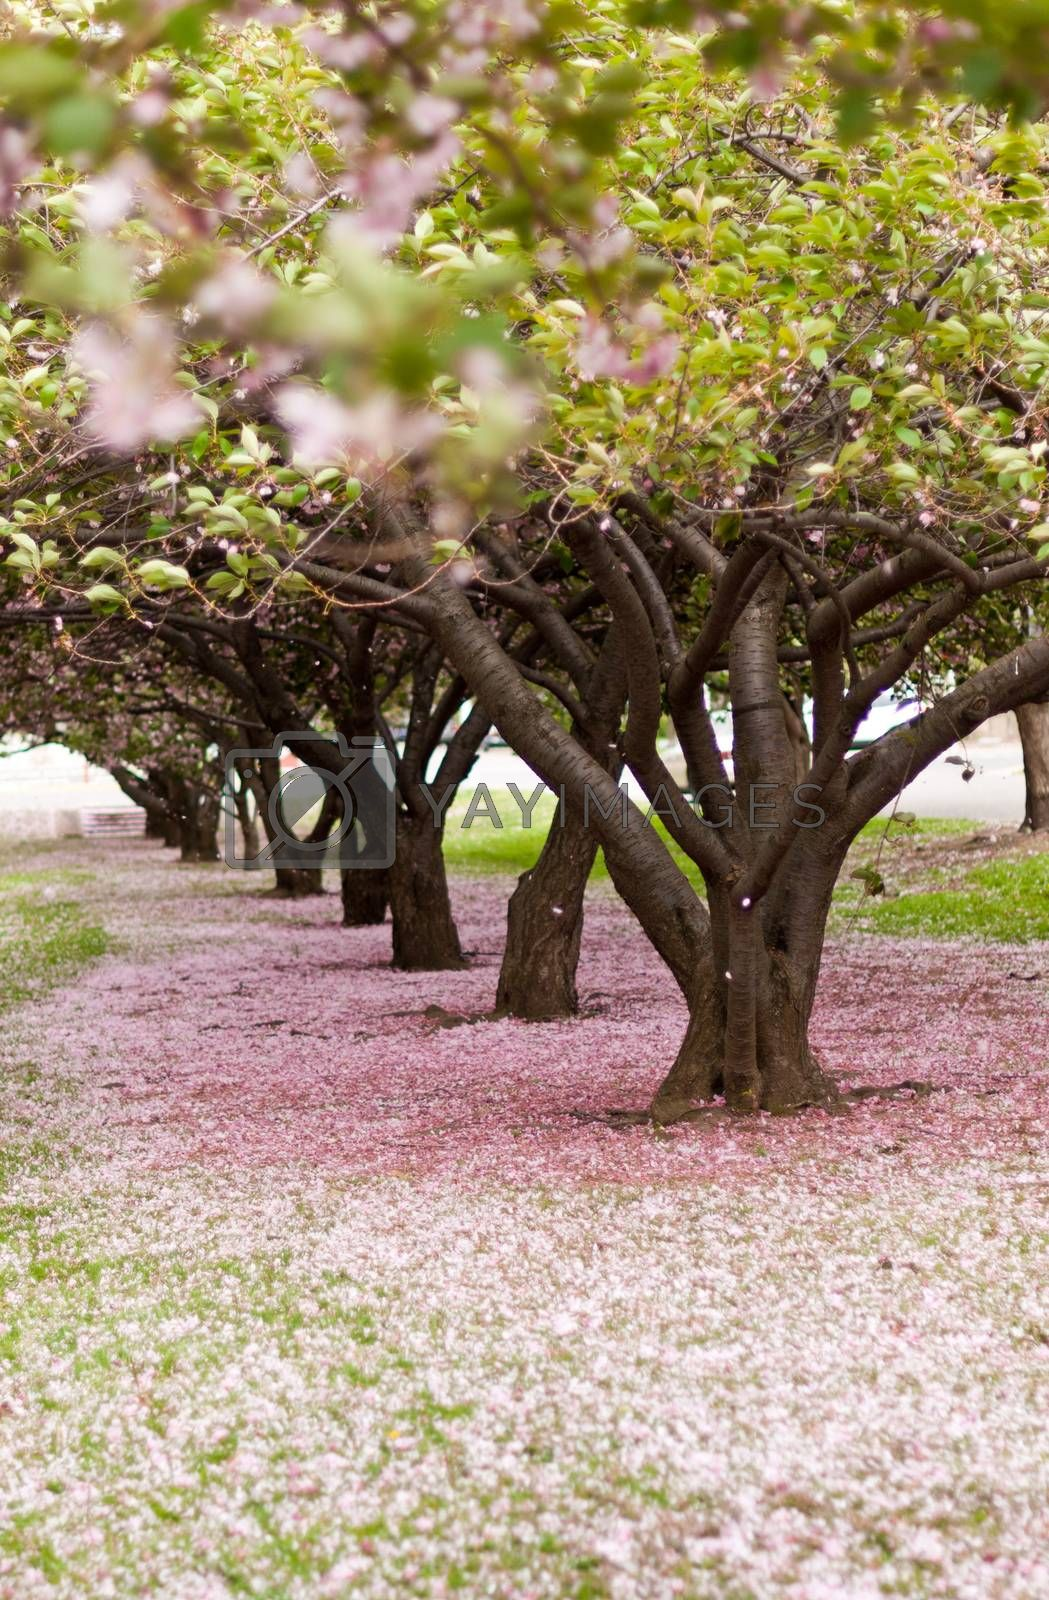 Cherry trees in blossom in an city park in America on a windy day.